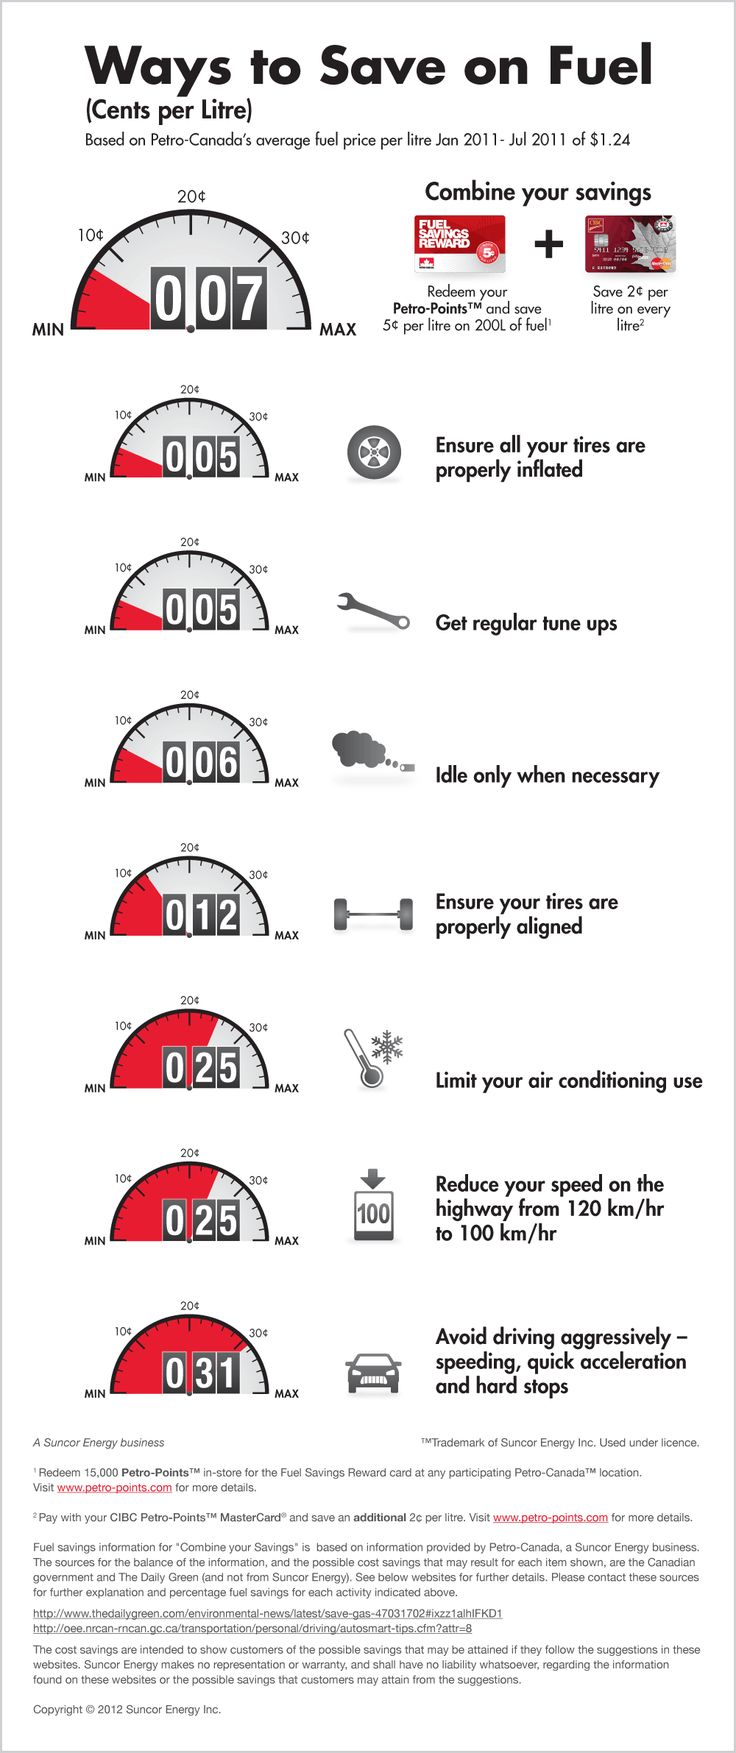 Design of infographic to illustrate various ways to save fuel costs when driving. Created for Petro-Canada's Pumptalk™ blog.